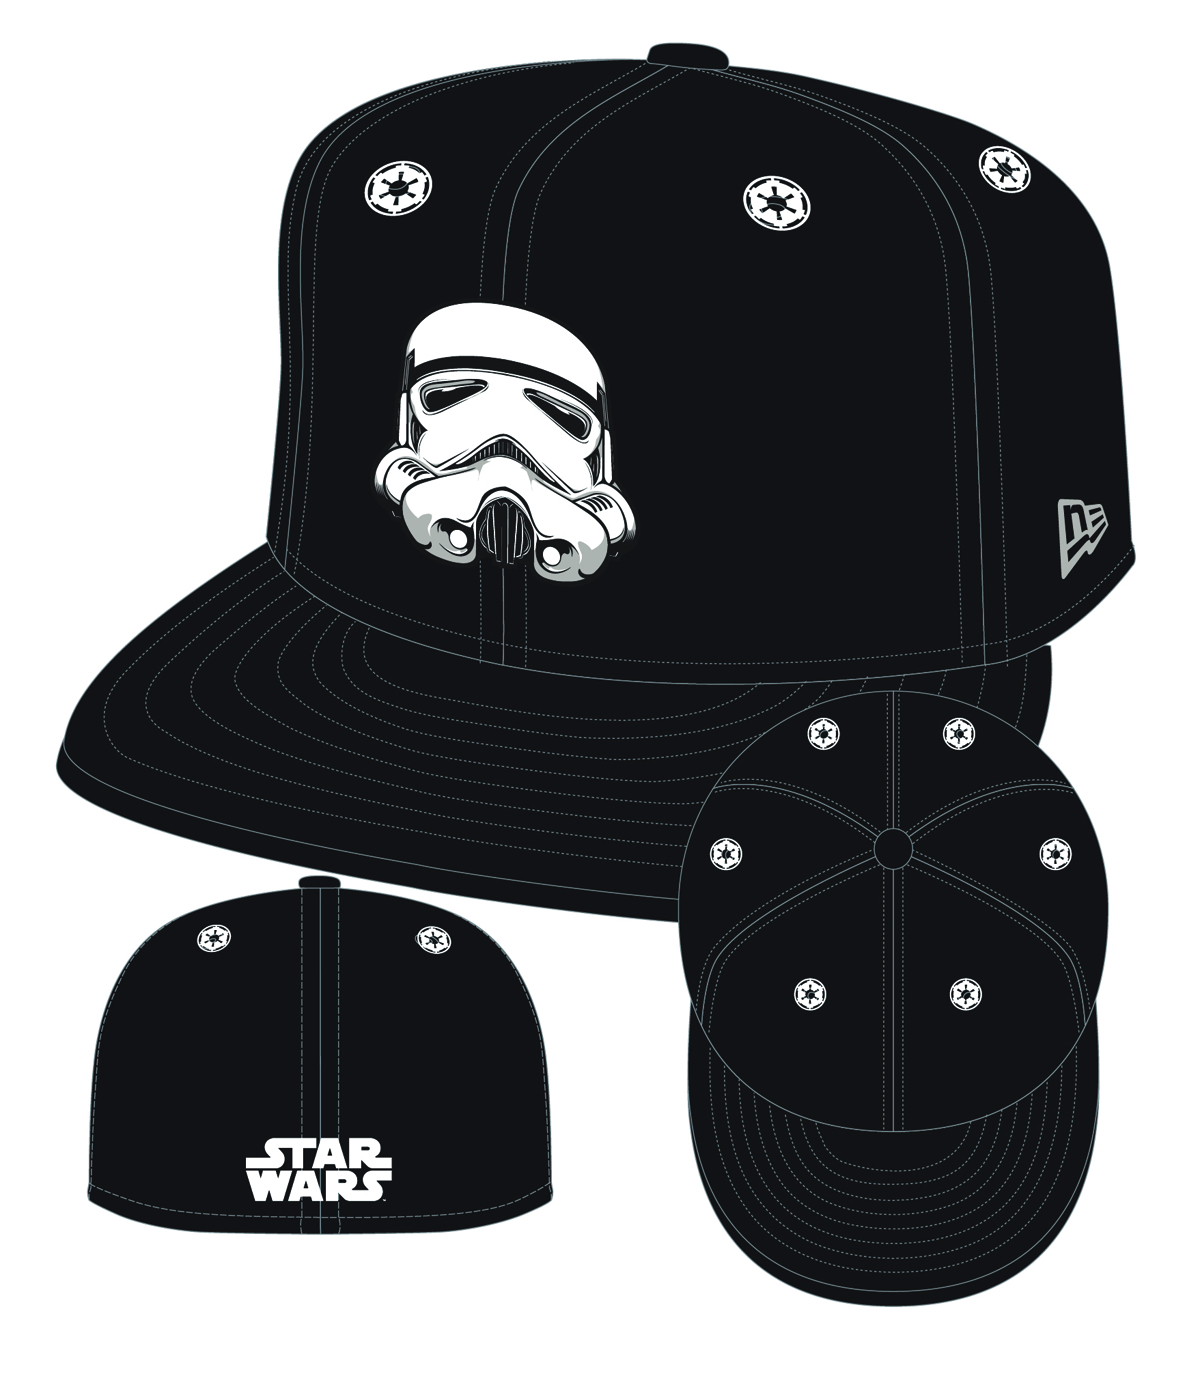 STAR WARS TROOPER 5950 STARGAZER FITTED CAP SZ 7 1/8